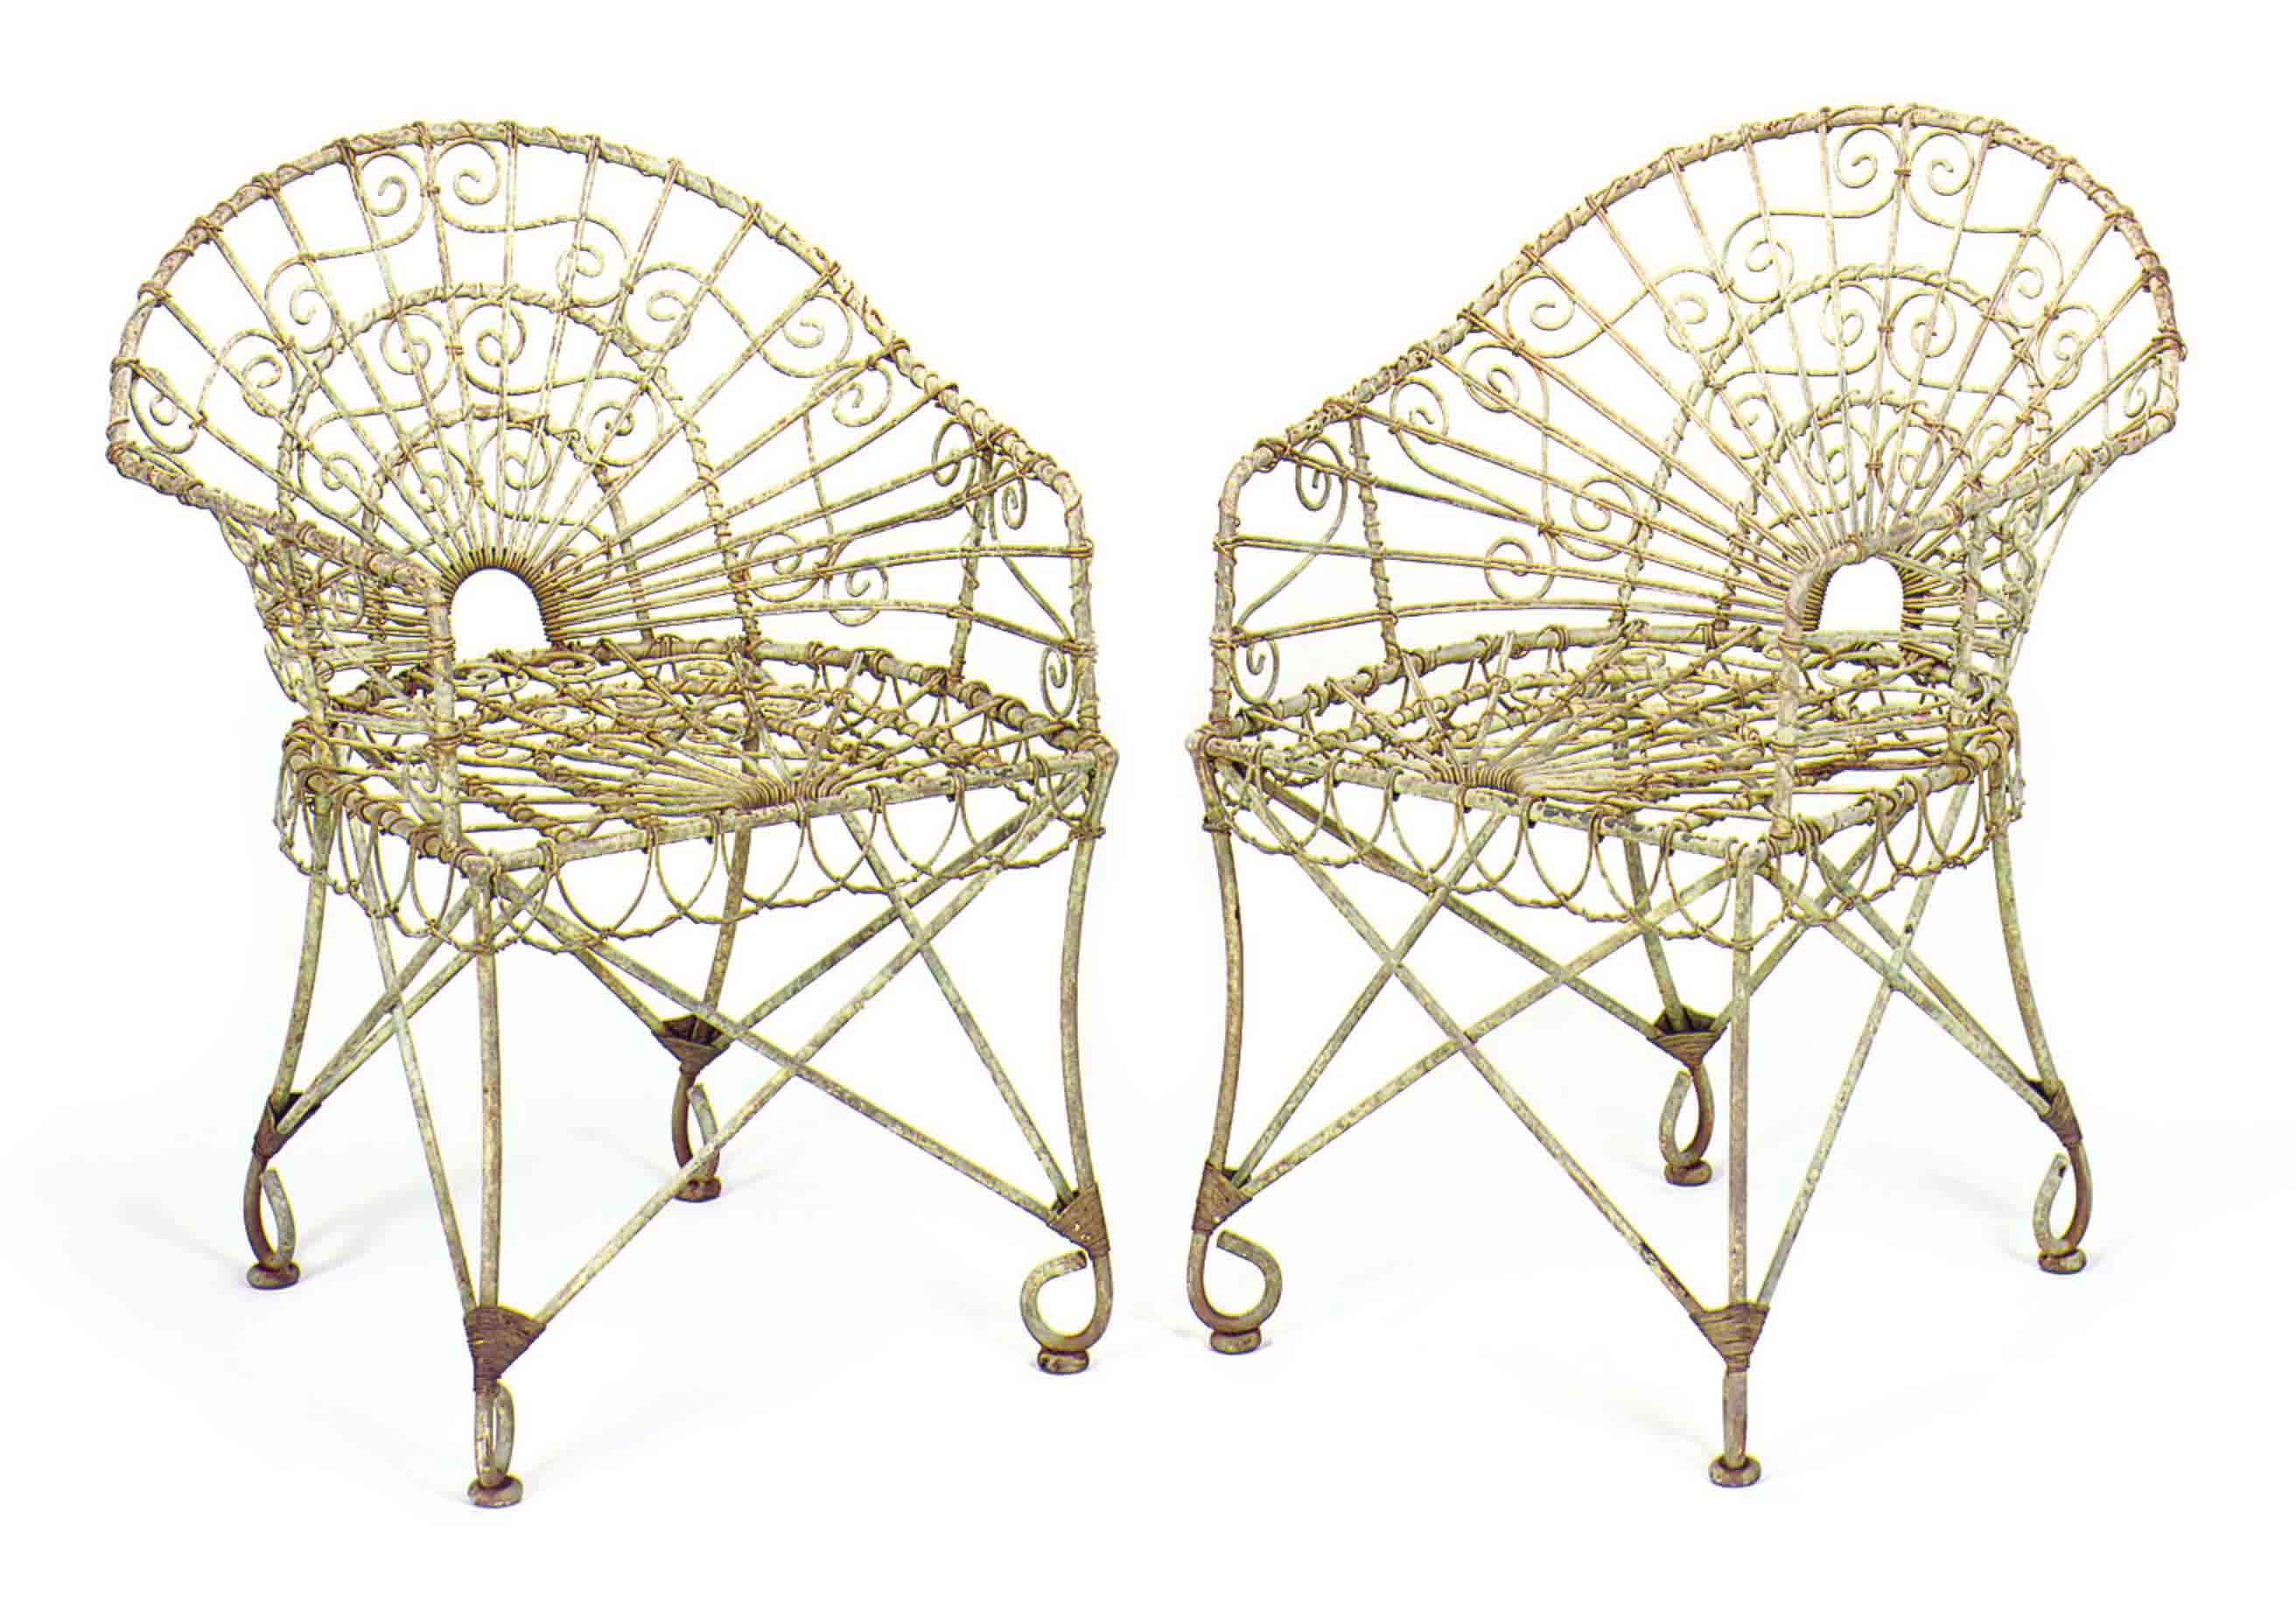 A SET OF FIFTEEN GREEN-PAINTED WIREWORK AND WROUGHT IRON GARDEN CHAIRS,